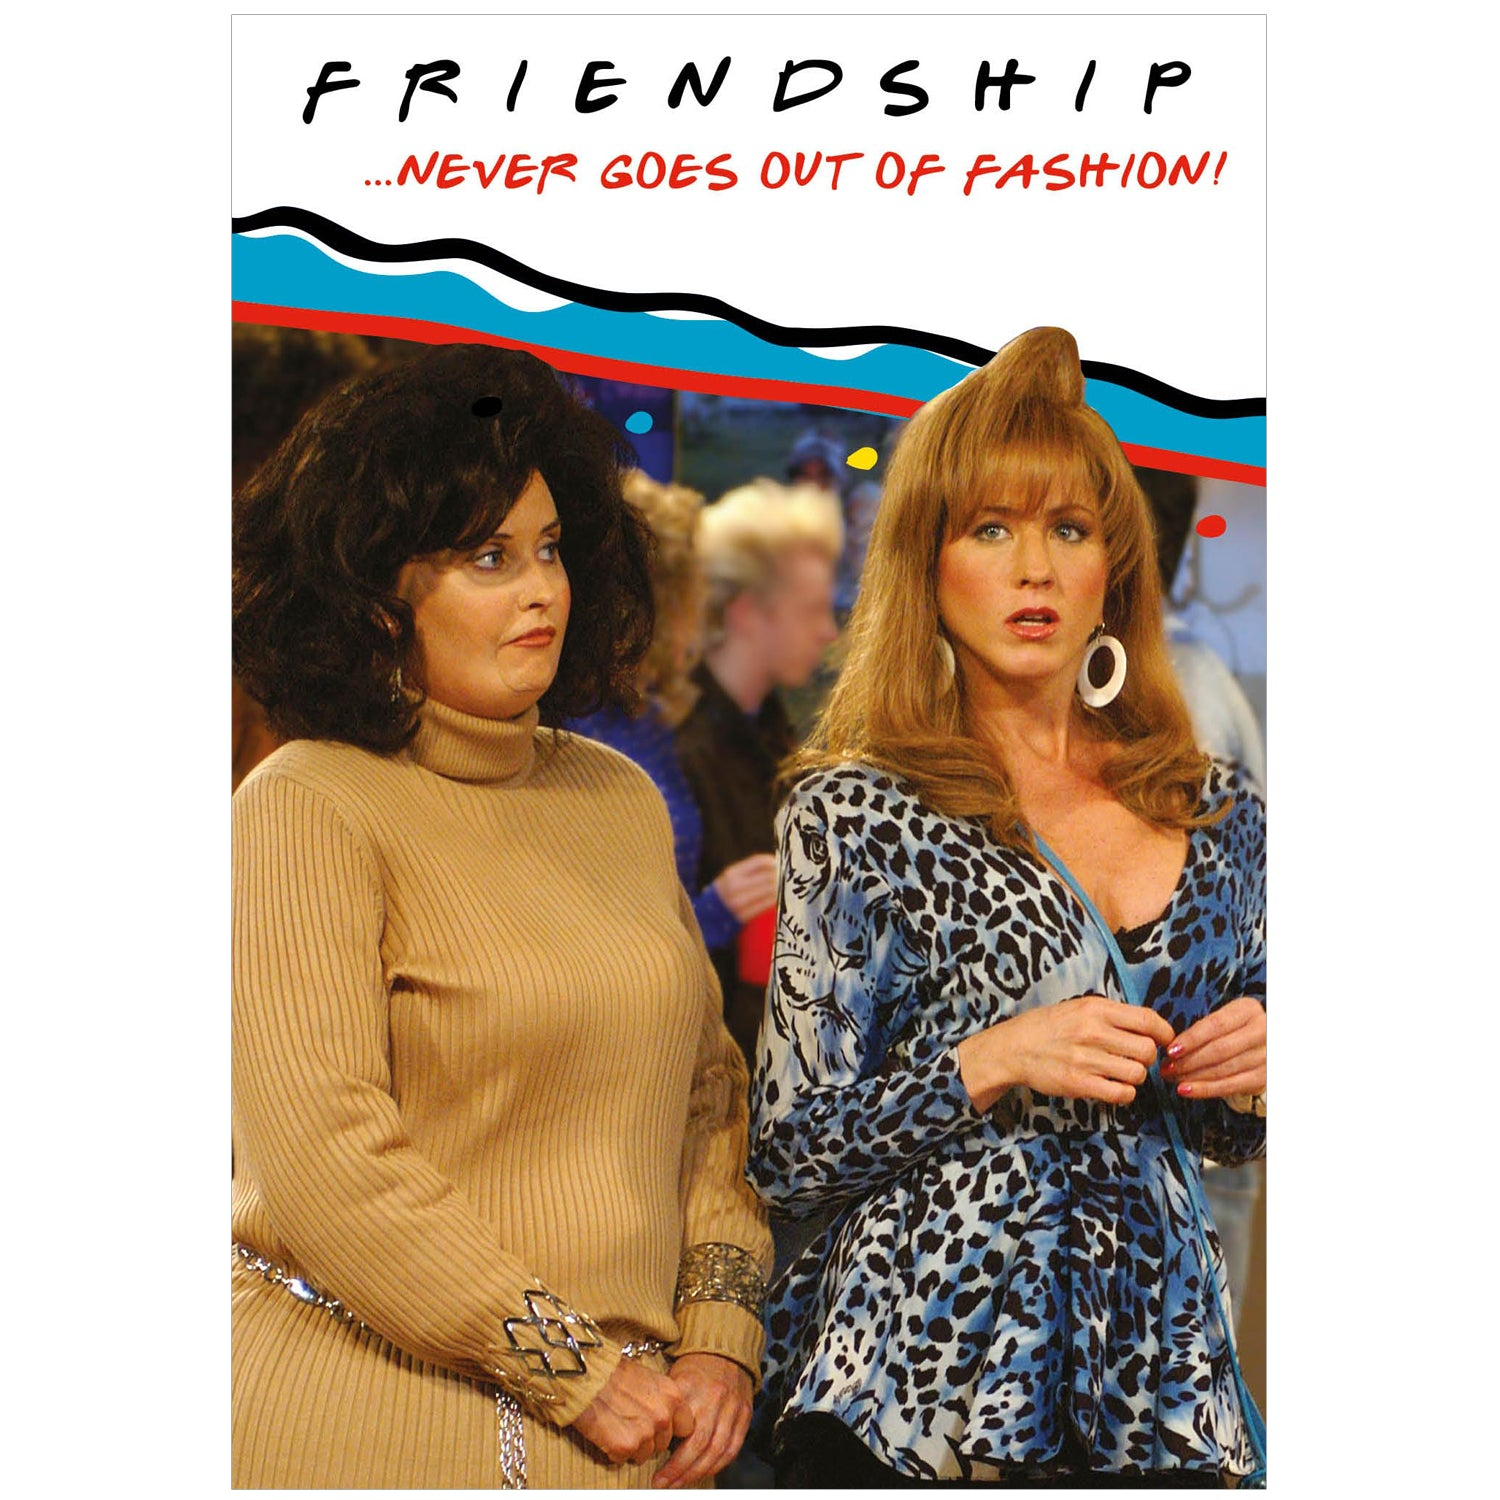 Friends 'Friendship never goes out of fashion' Birthday Card